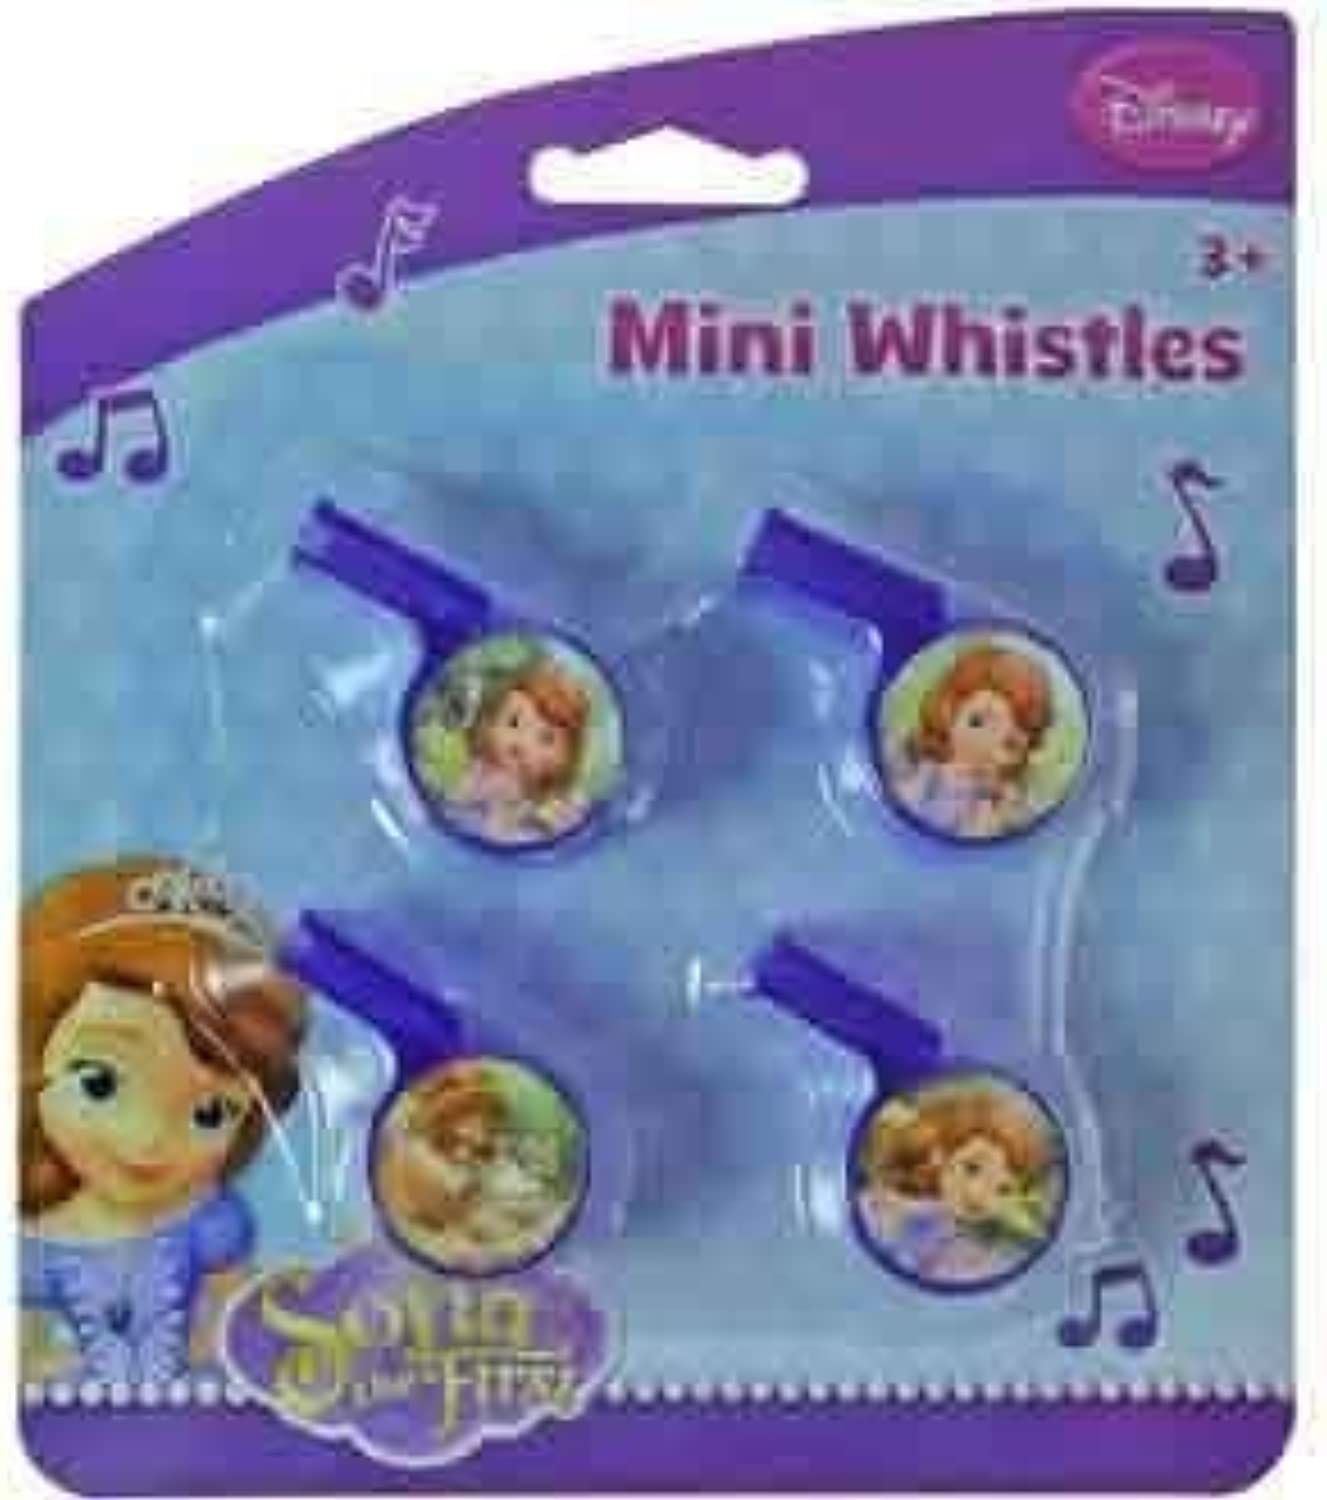 Sofia The First Mini Whistle 4 Pk [7 Retail Unit(s) Pack] - 27807SOF